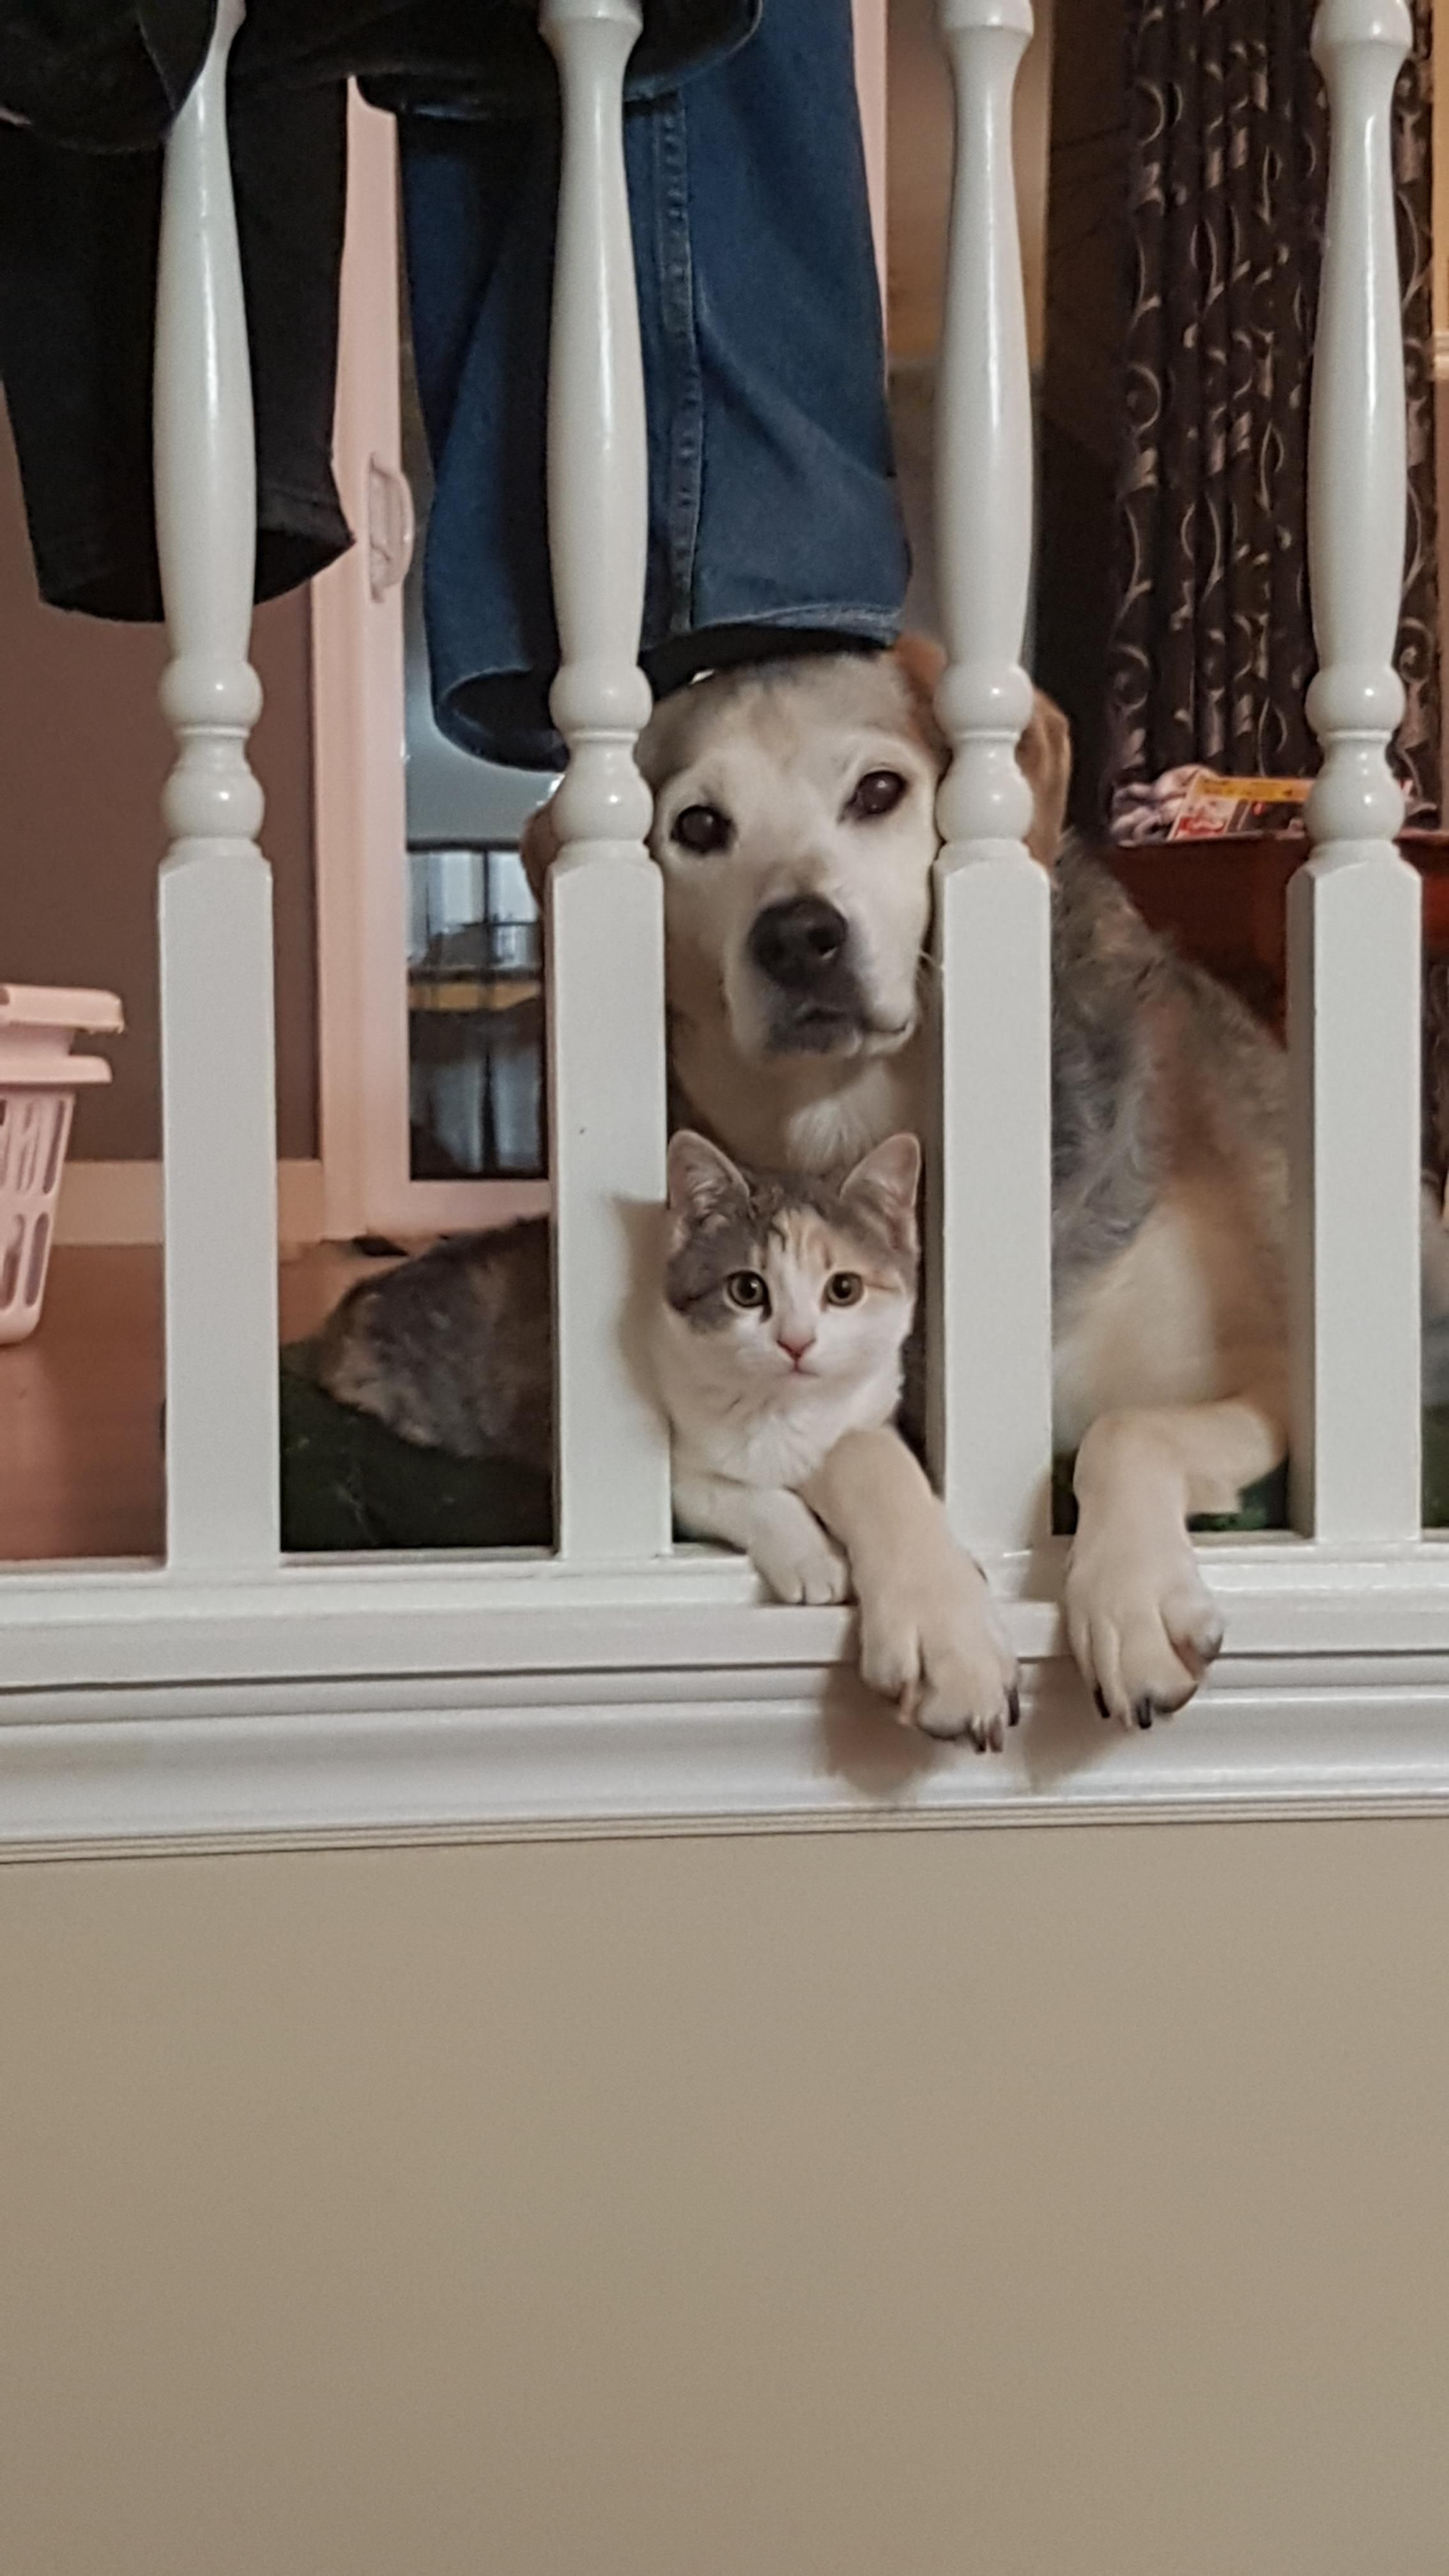 I Seen This When I Walked In Retired Therapy Dog Gets A Kitten Take 2 Http Ift Tt 2e0bdyx Dogs Dog Cat Pets